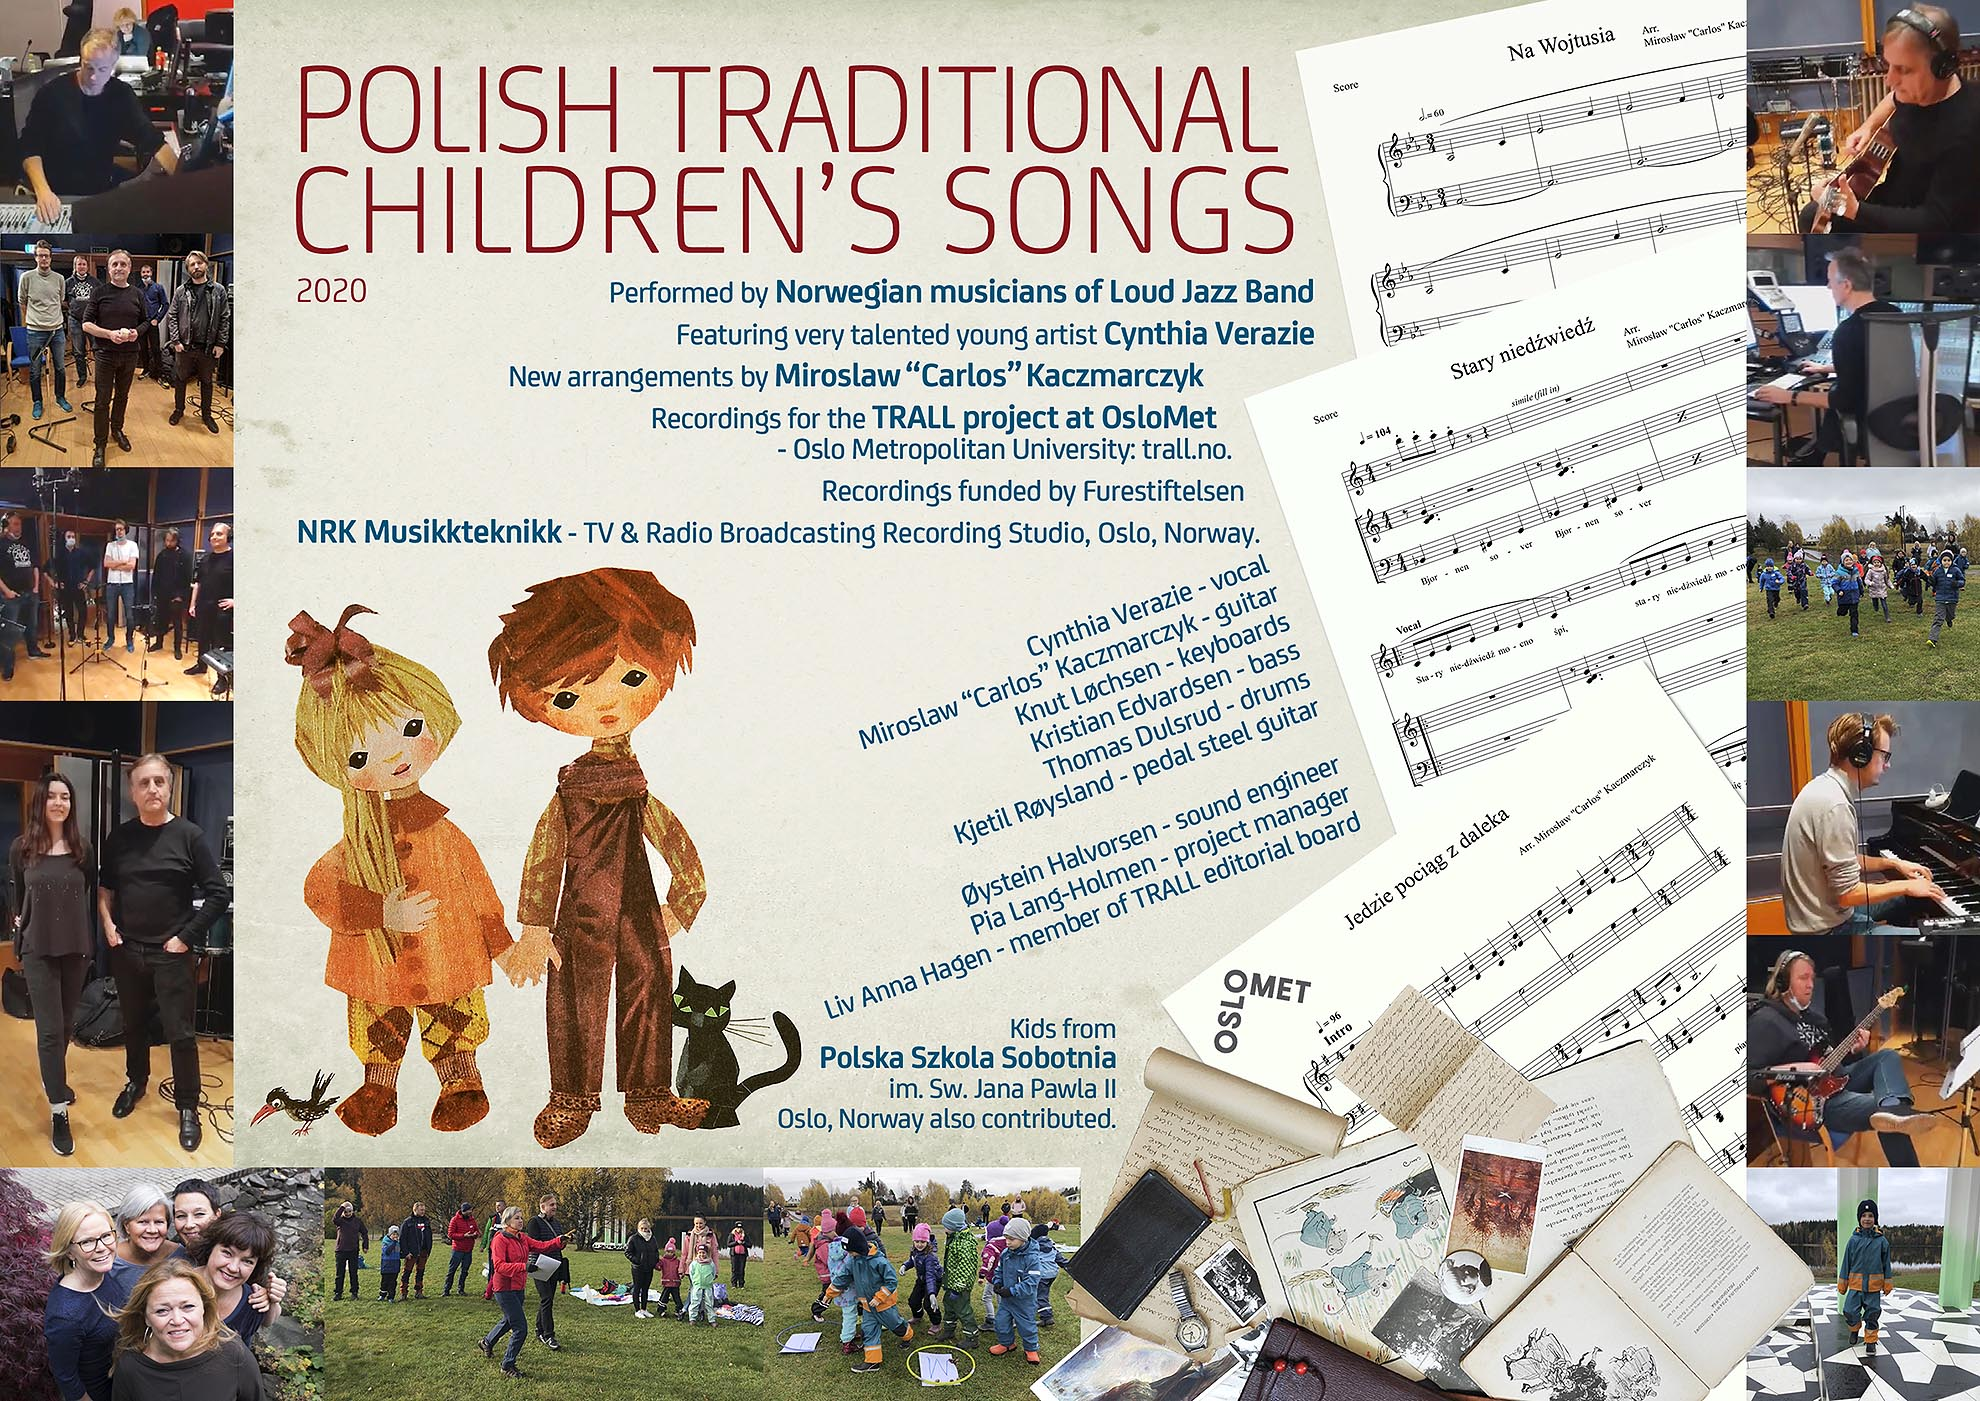 Polish Traditional Children's Songs